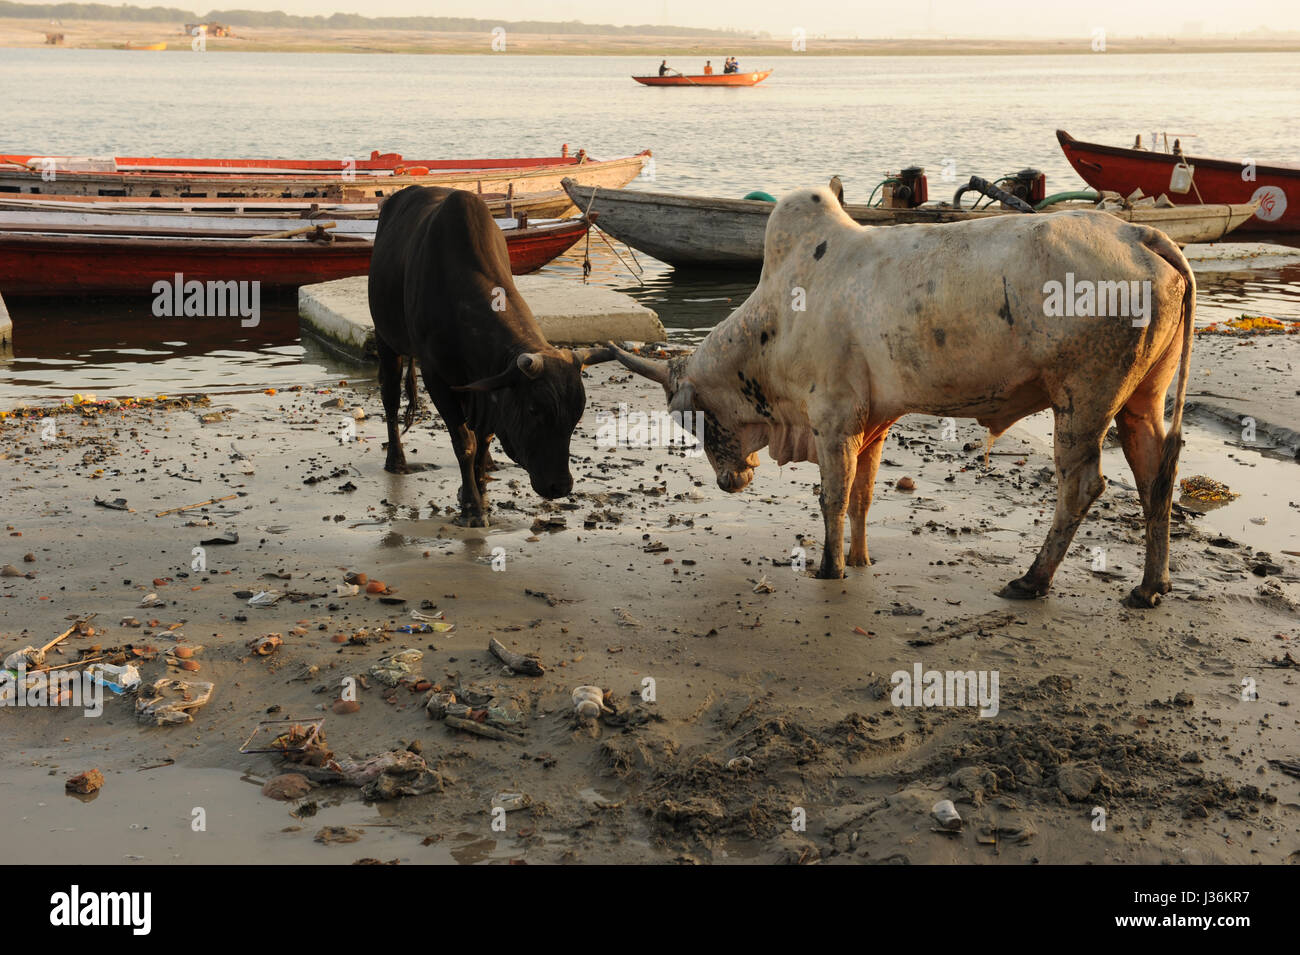 Cows on the bank of the river Ganges in Varanasi, Uttar Pradesh in India - Stock Image